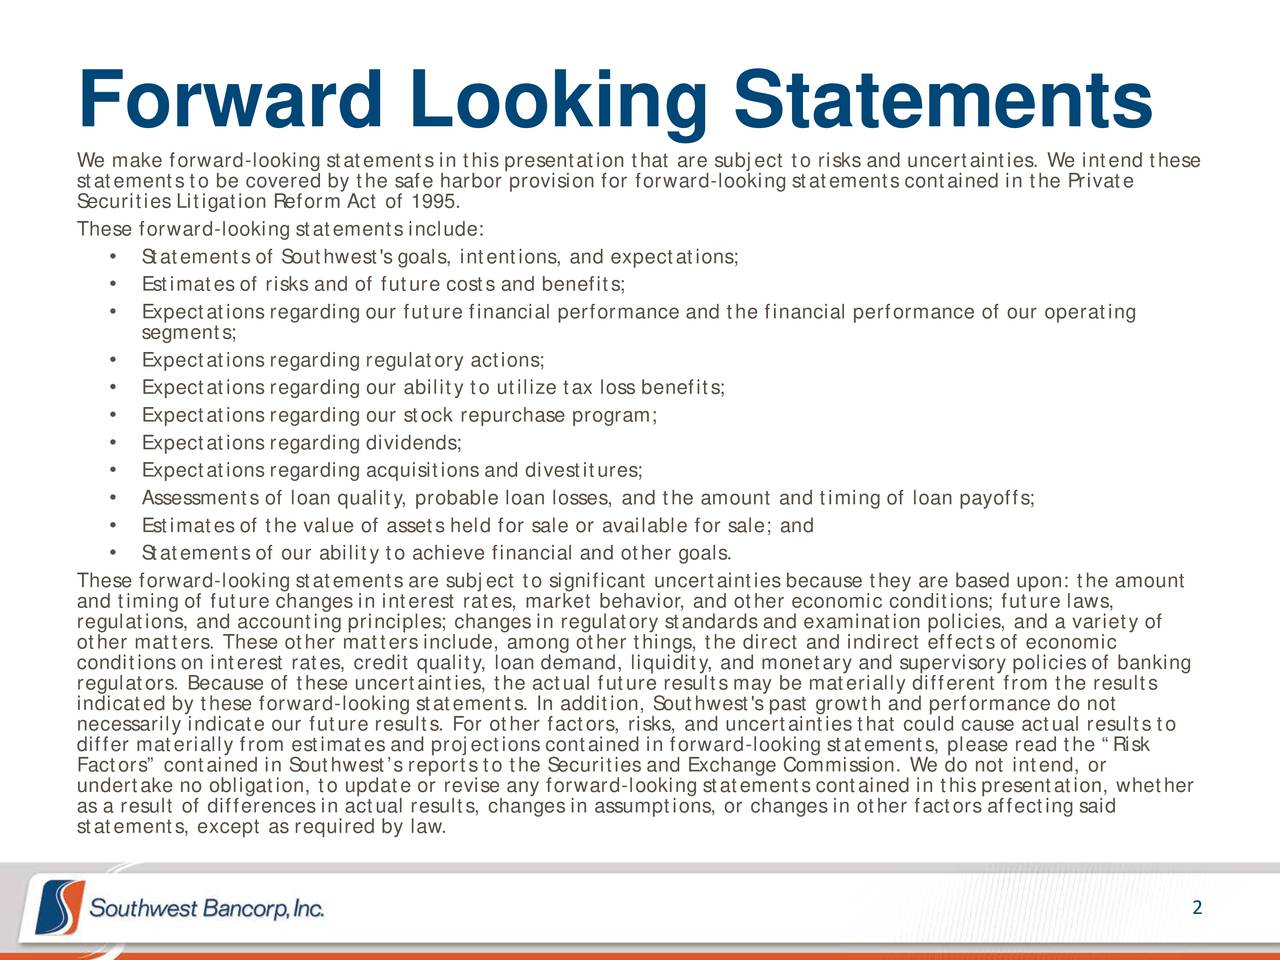 We make forward-looking statements in this presentation that are subject to risks and uncertainties. We intend these statements to be covered by the safe harbor provision for forward-looking statements contained in the Private Securities Litigation Reform Act of 1995. These forward-looking statements include: Statements of Southwest's goals, intentions, and expectations; Estimates of risks and of future costs and benefits; Expectations regarding our future financial performance and the financial performance of our operating segments; Expectations regarding regulatory actions; Expectations regarding our ability to utilize tax loss benefits; Expectations regarding our stock repurchase program; Expectations regarding dividends; Expectations regarding acquisitions and divestitures; Assessments of loan quality, probable loan losses, and the amount and timing of loan payoffs; Estimates of the value of assets held for sale or available for sale; and Statements of our ability to achieve financial and other goals. These forward-looking statements are subject to significant uncertainties because they are based upon: the amount regulations, and accounting principles; changes in regulatory standards and examination policies, and a variety of other matters. These other matters include, among other things, the direct and indirect effects of economic conditions on interest rates, credit quality, loan demand, liquidity, and monetary and supervisory policies of banking regulators. Because of these uncertainties, the actual future results may be materially different from the results indicated by these forward-looking statements. In addition, Southwest's past growth and performance do not necessarily indicate our future results. For other factors, risks, and uncertainties that could cause actual results to differ materially from estimates and projections contained in forward-looking statements, please read the Risk Factors contained in Southwests reports to the Securities and Exchange Commission. We do not intend, or undertake no obligation, to update or revise any forward-looking statements contained in this presentation, whether statements, except as required by law.esults, changes in assumptions, or changes in other factors affecting said 2